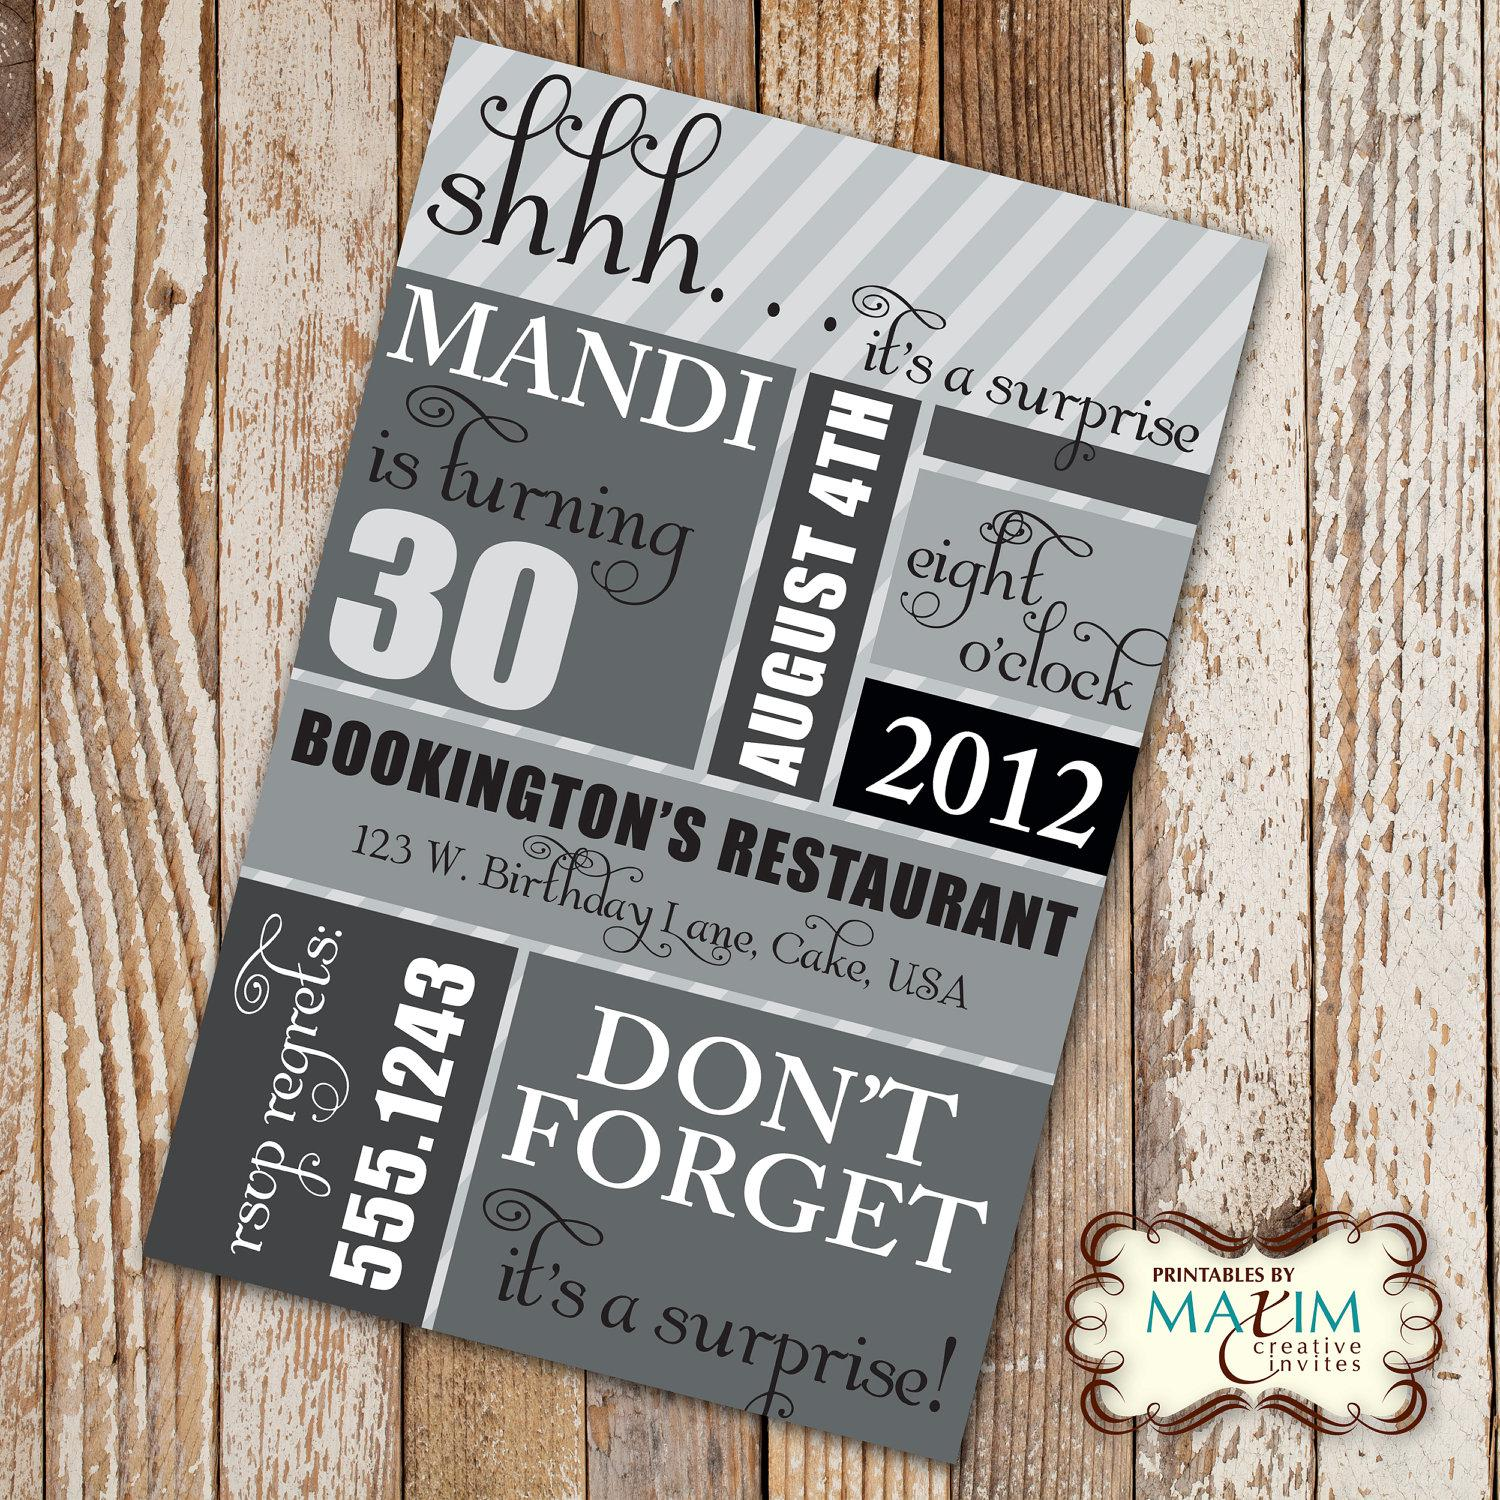 Surprise 30th Birthday Party Invitations